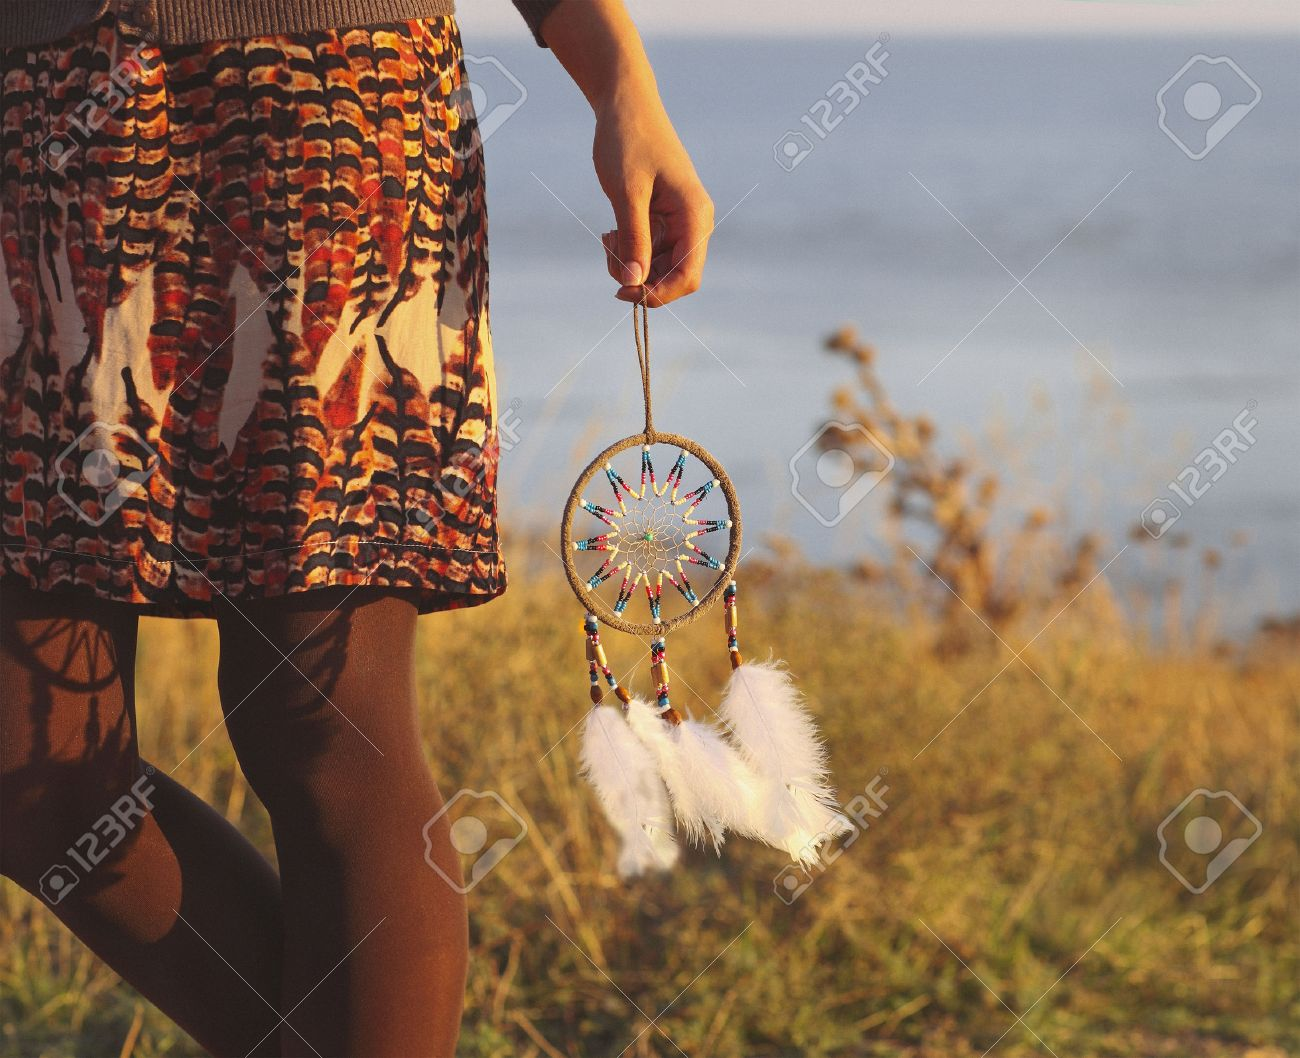 Brunette woman with long hair holding dream catcher in her hands - 42278076